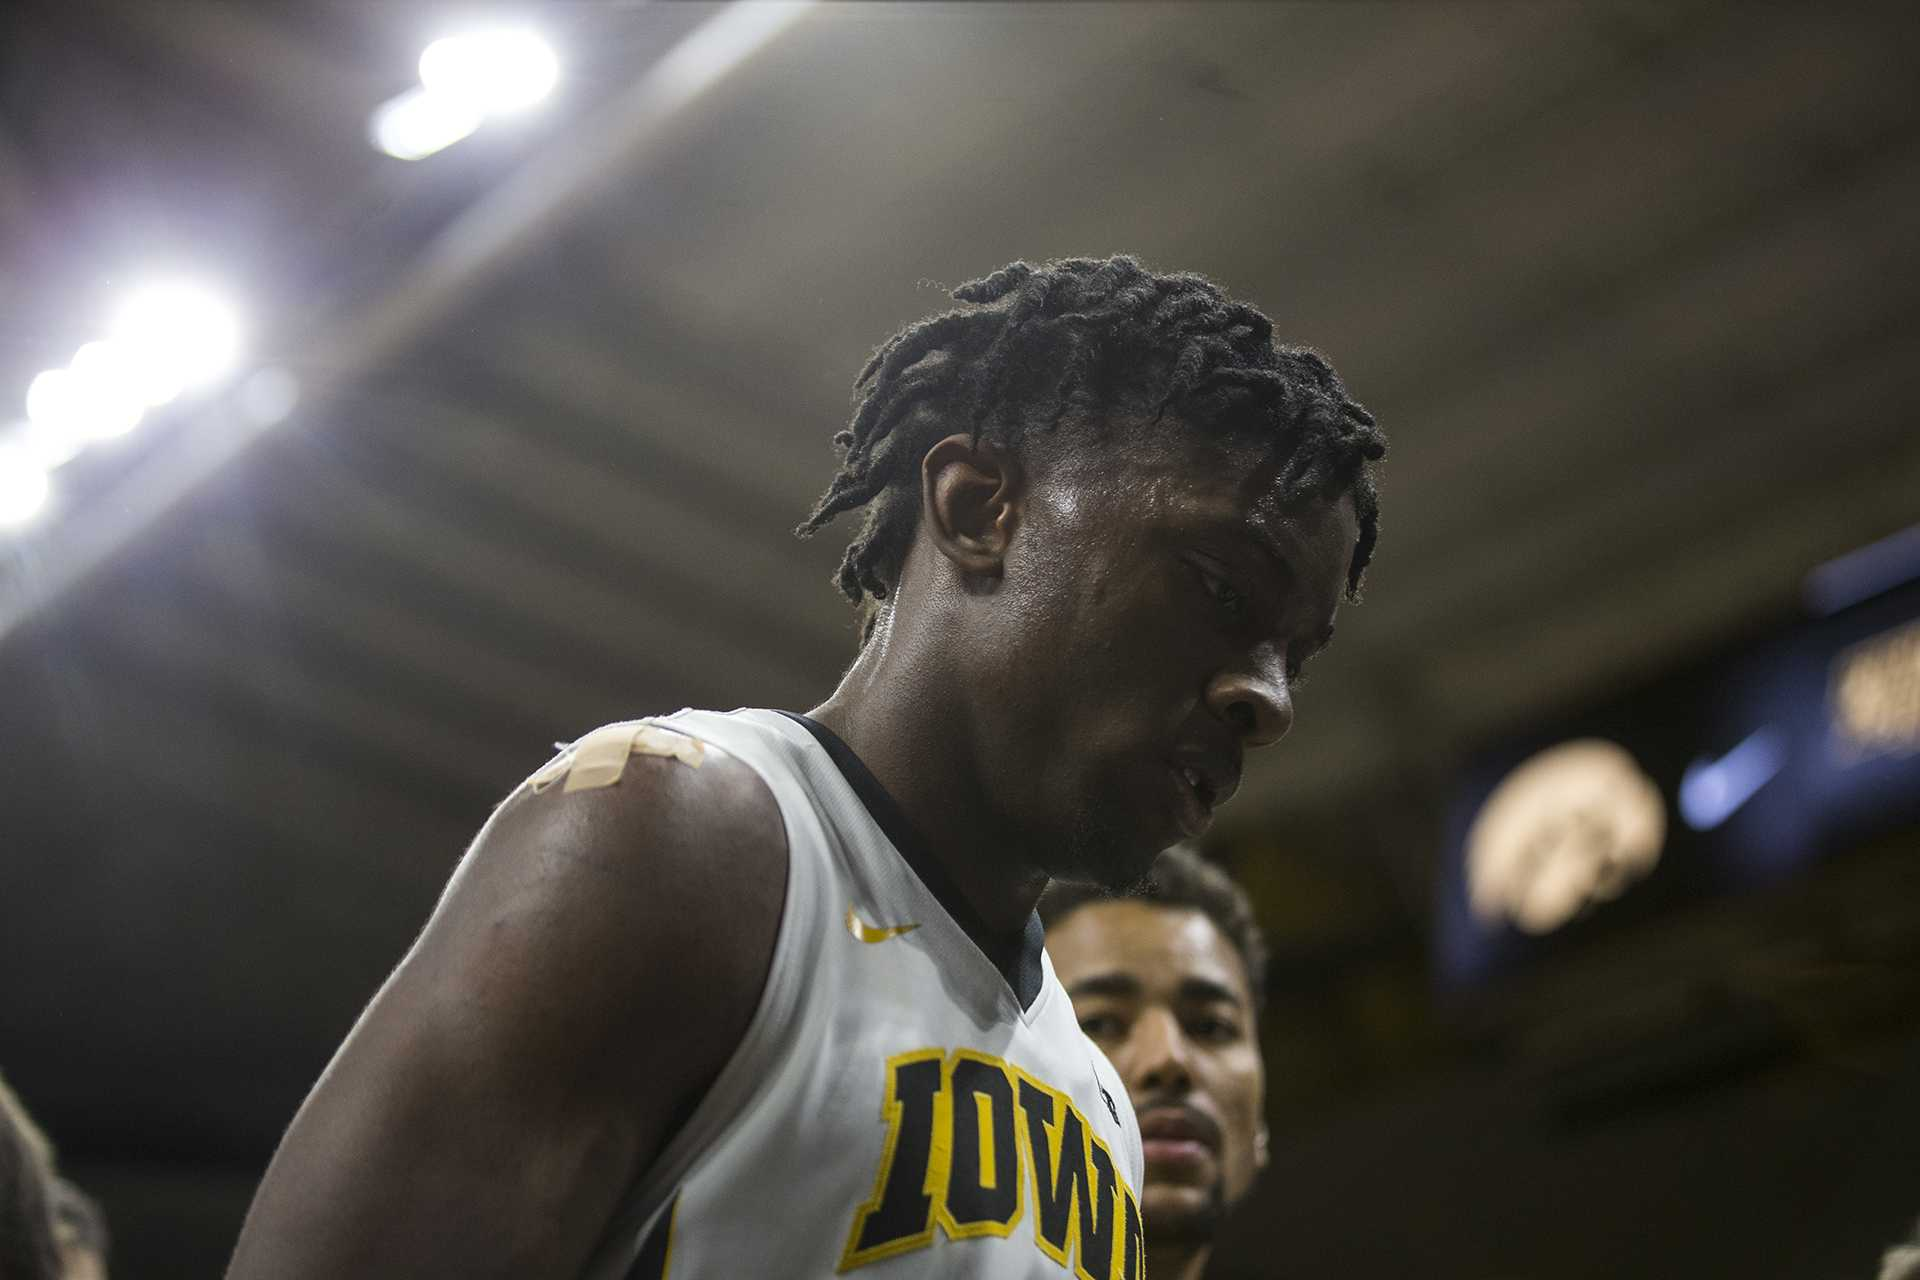 Iowa forward Tyler Cook walks off the court after the NCAA basketball game between Iowa and Michigan at Carver-Hawkeye Arena on Tuesday, Jan. 2, 2017. The Hawkeyes fell to the Wolverines 75-68. (Ben Allan Smith/The Daily Iowan)